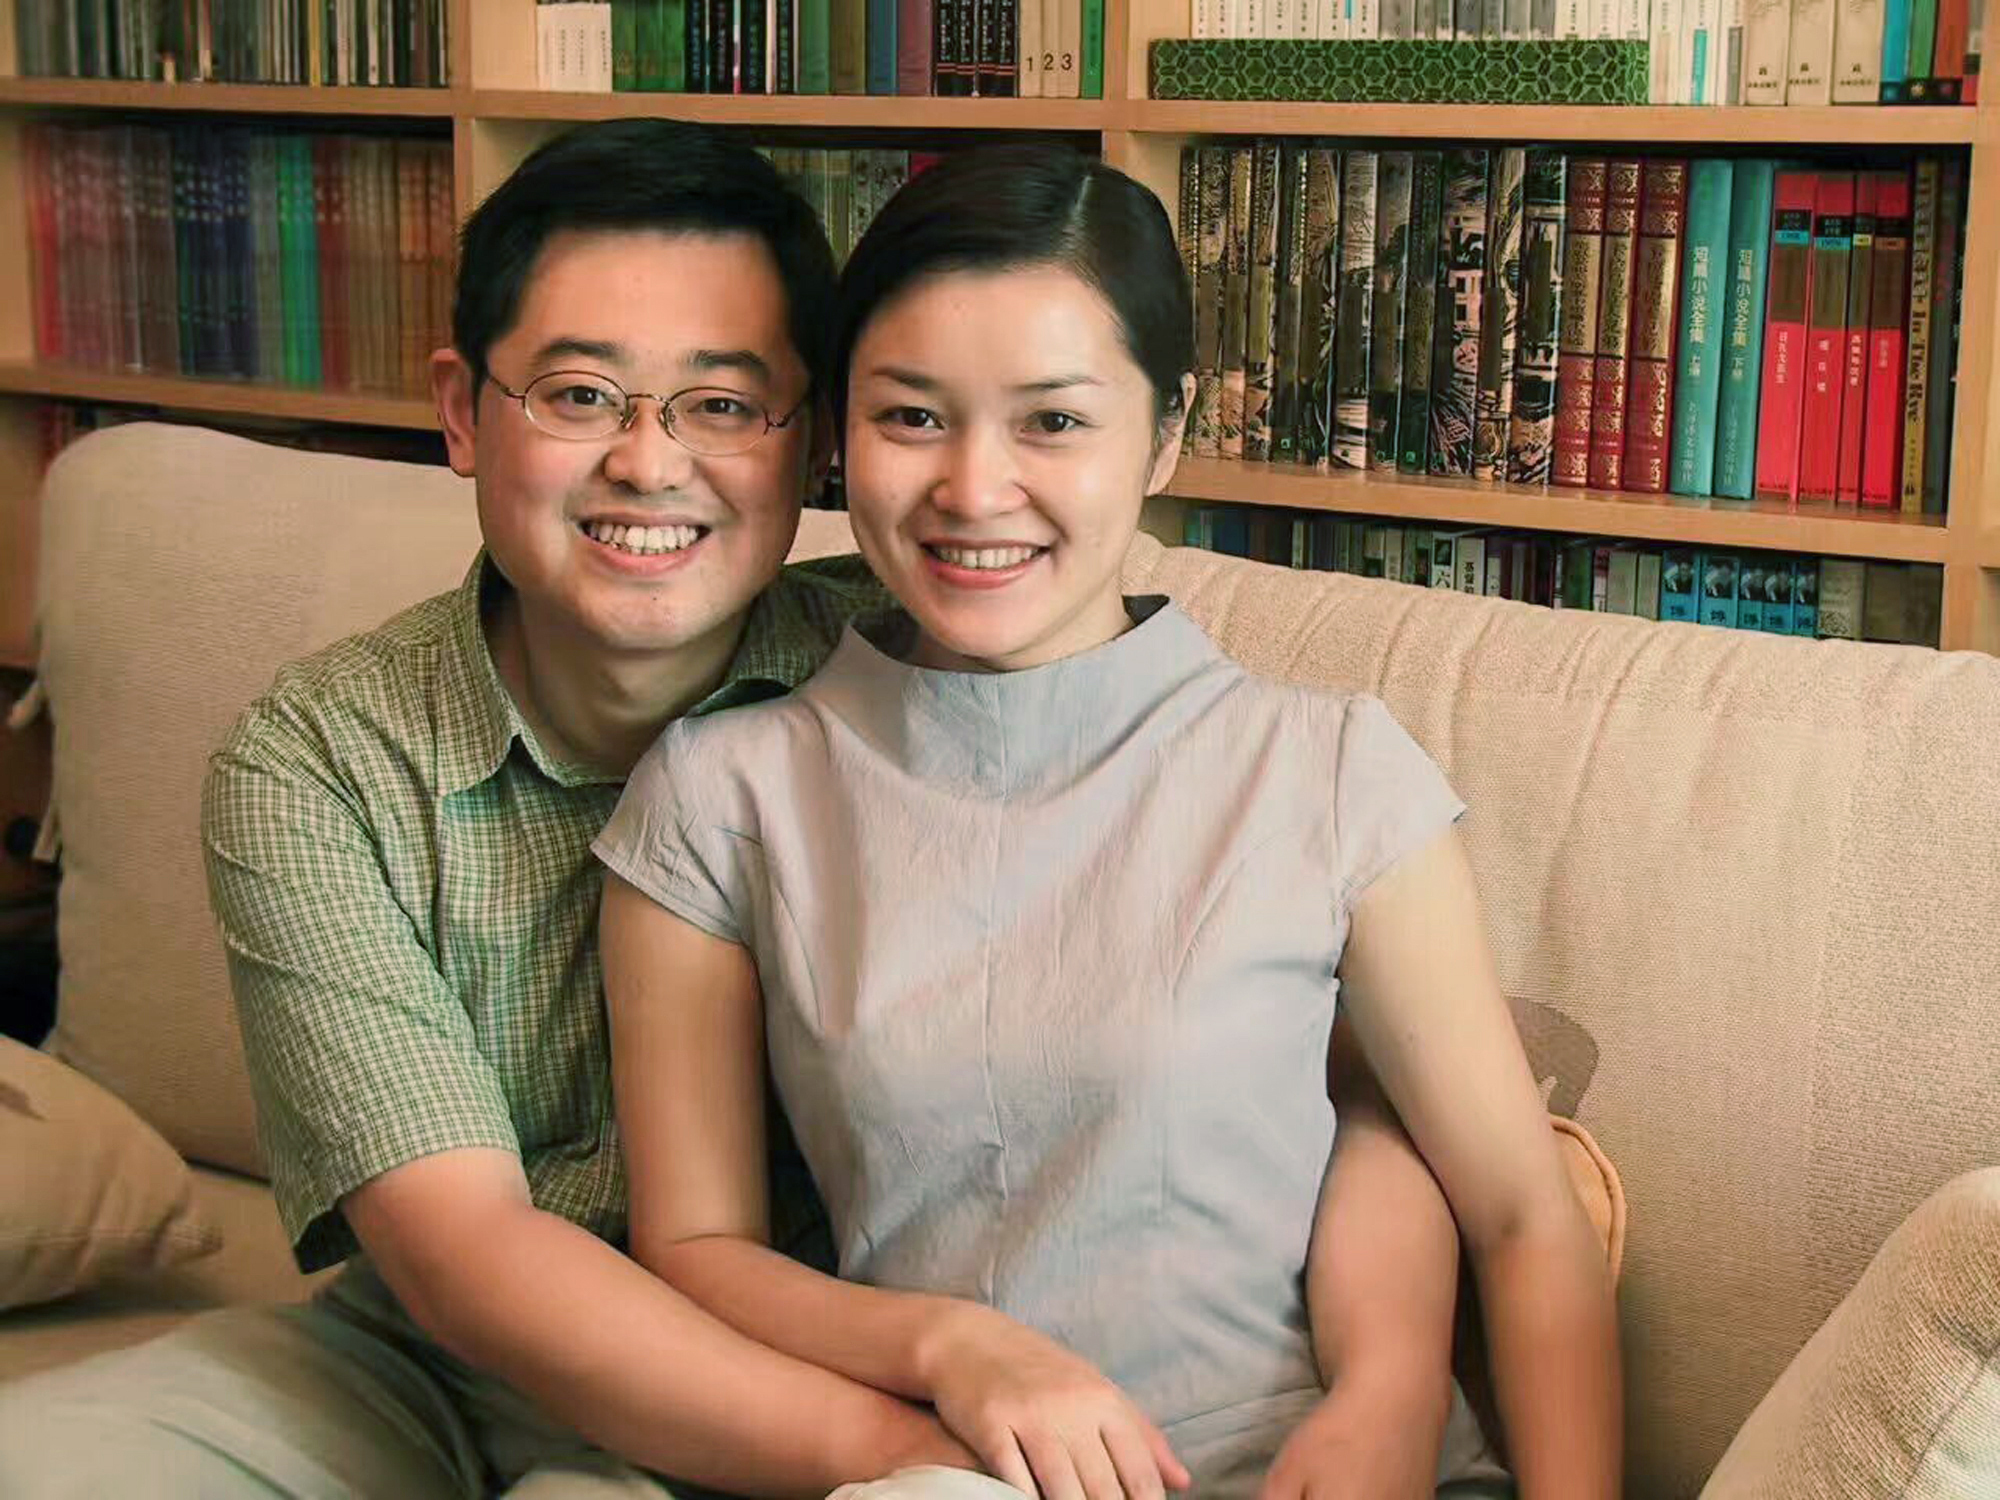 In this 2000 photo provided by ChinaAid, pastor Wang Yi, left, poses with his wife Jiang Rong at the study room of their home in Chengdu, China.